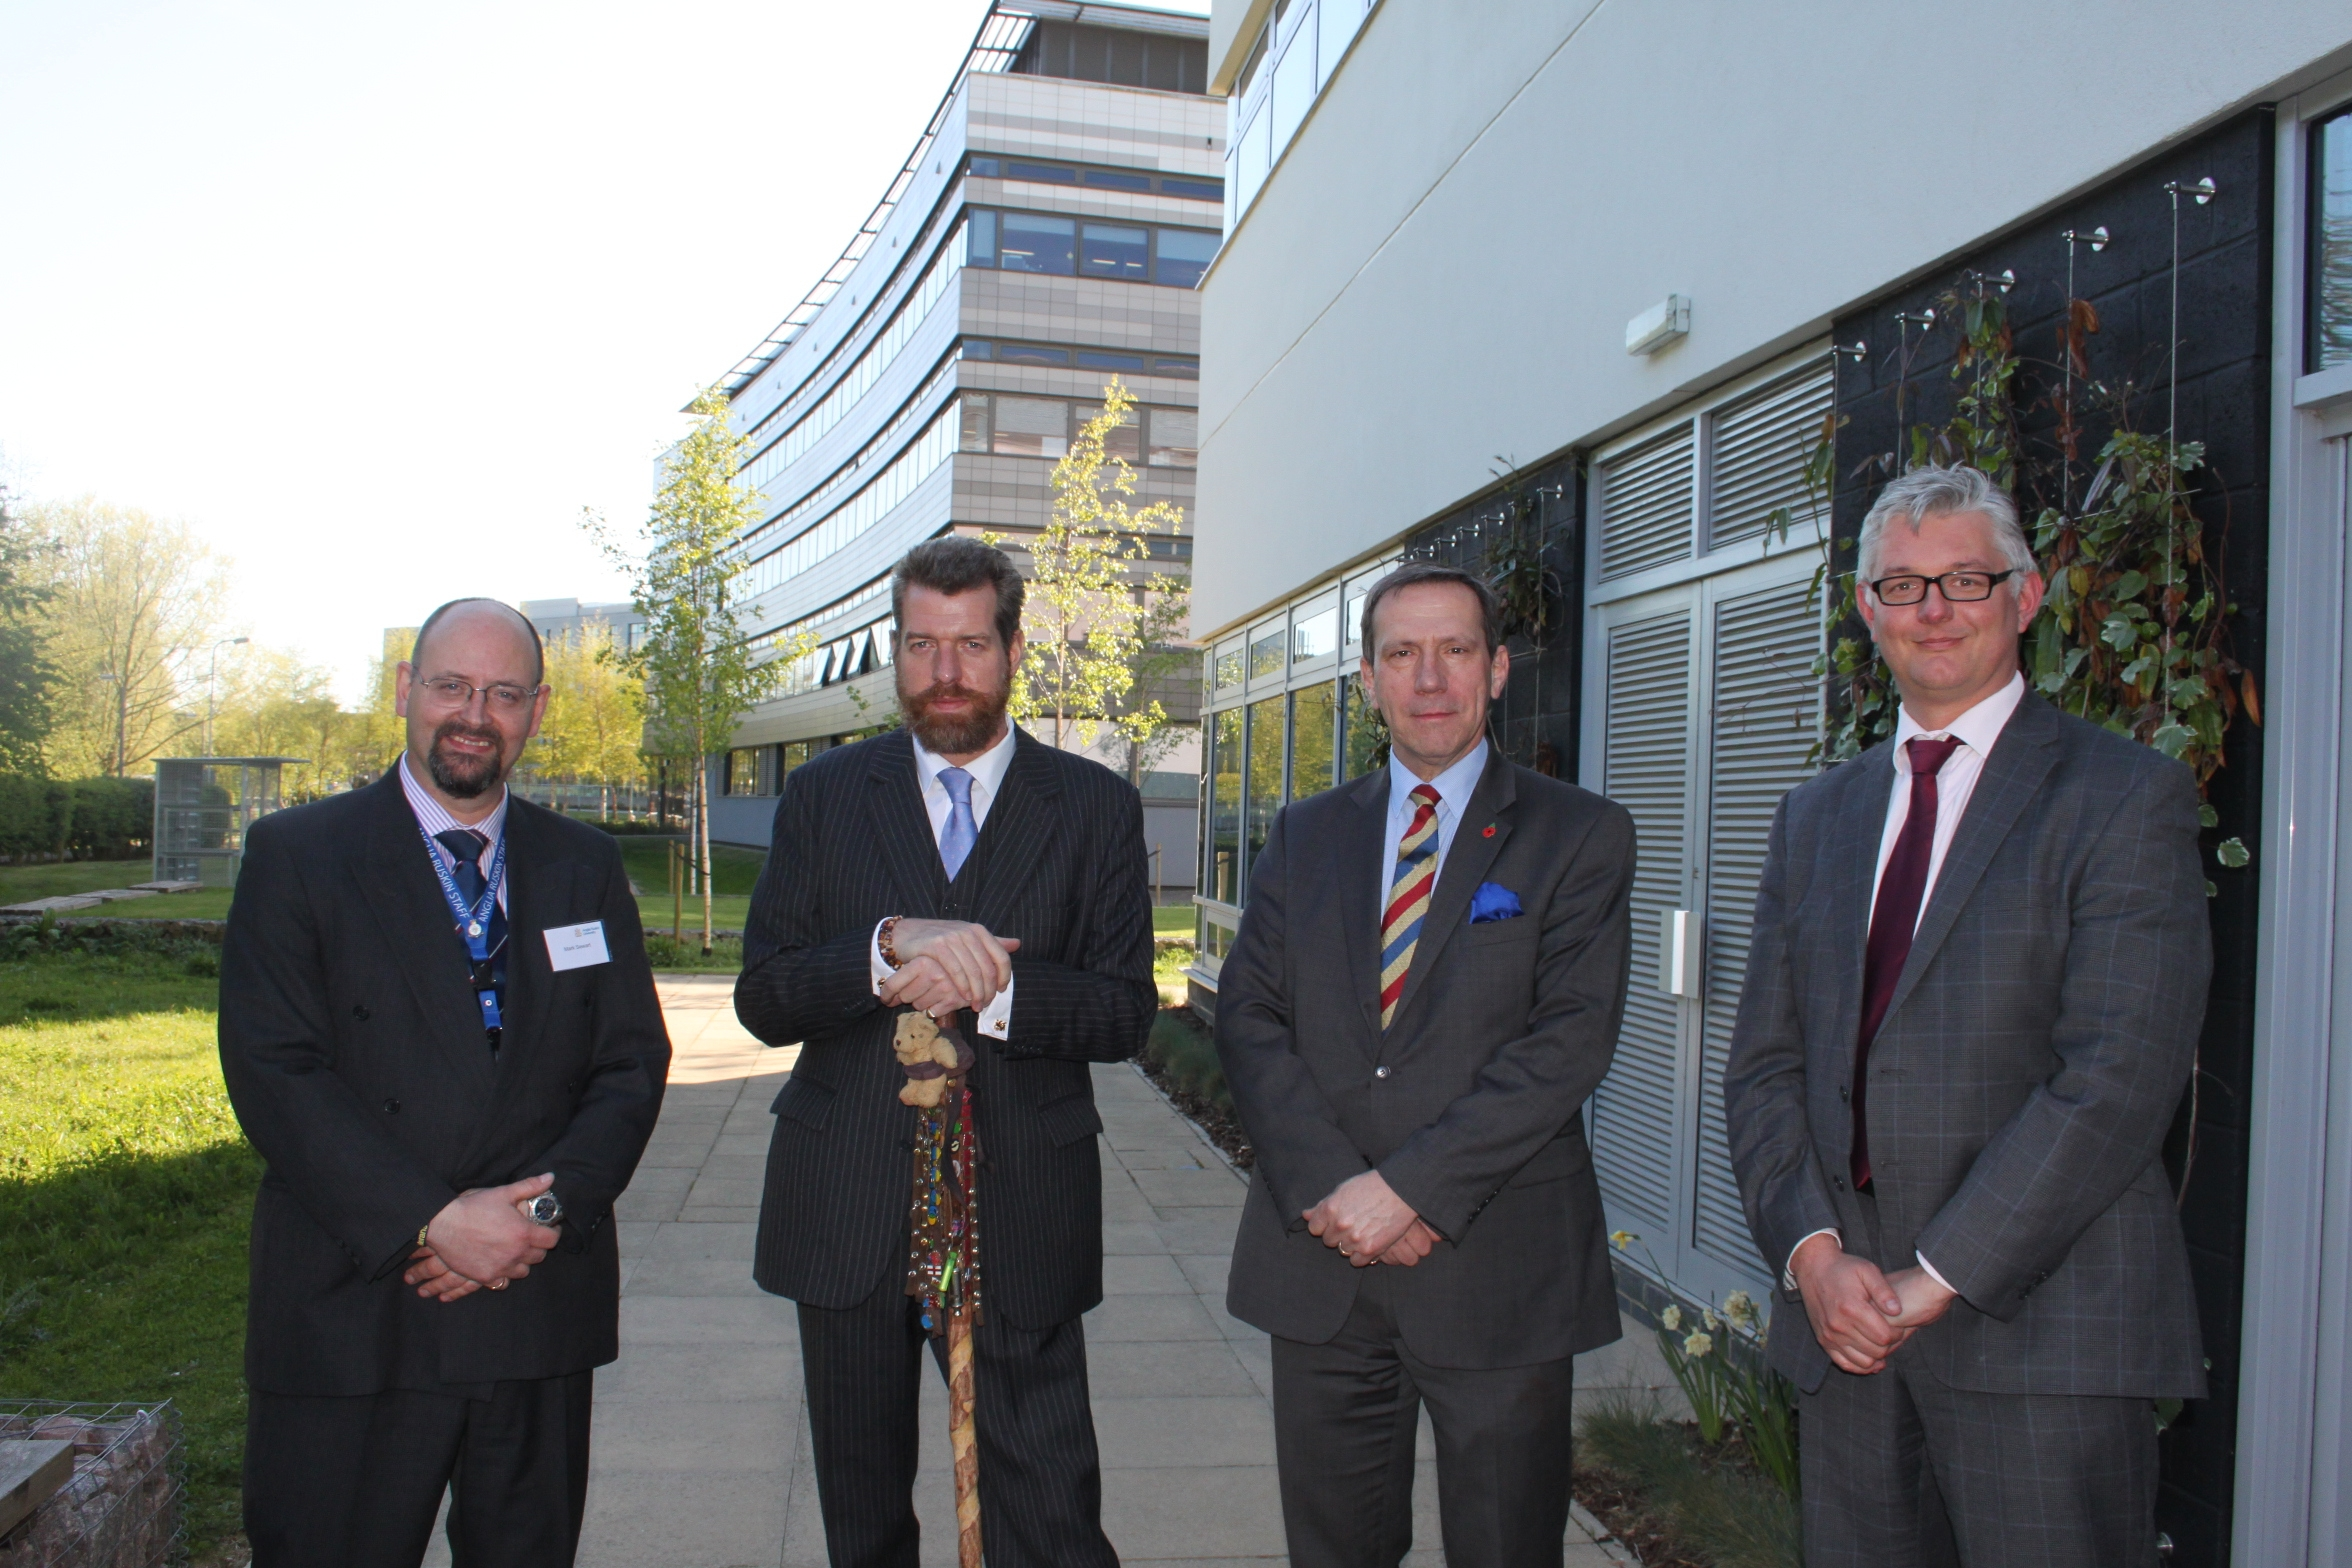 L-R: Mark Stewart, Phil Packer, Jamie Hacker-Hughes and Matt Fossey at Anglia Ruskin for the institute launch